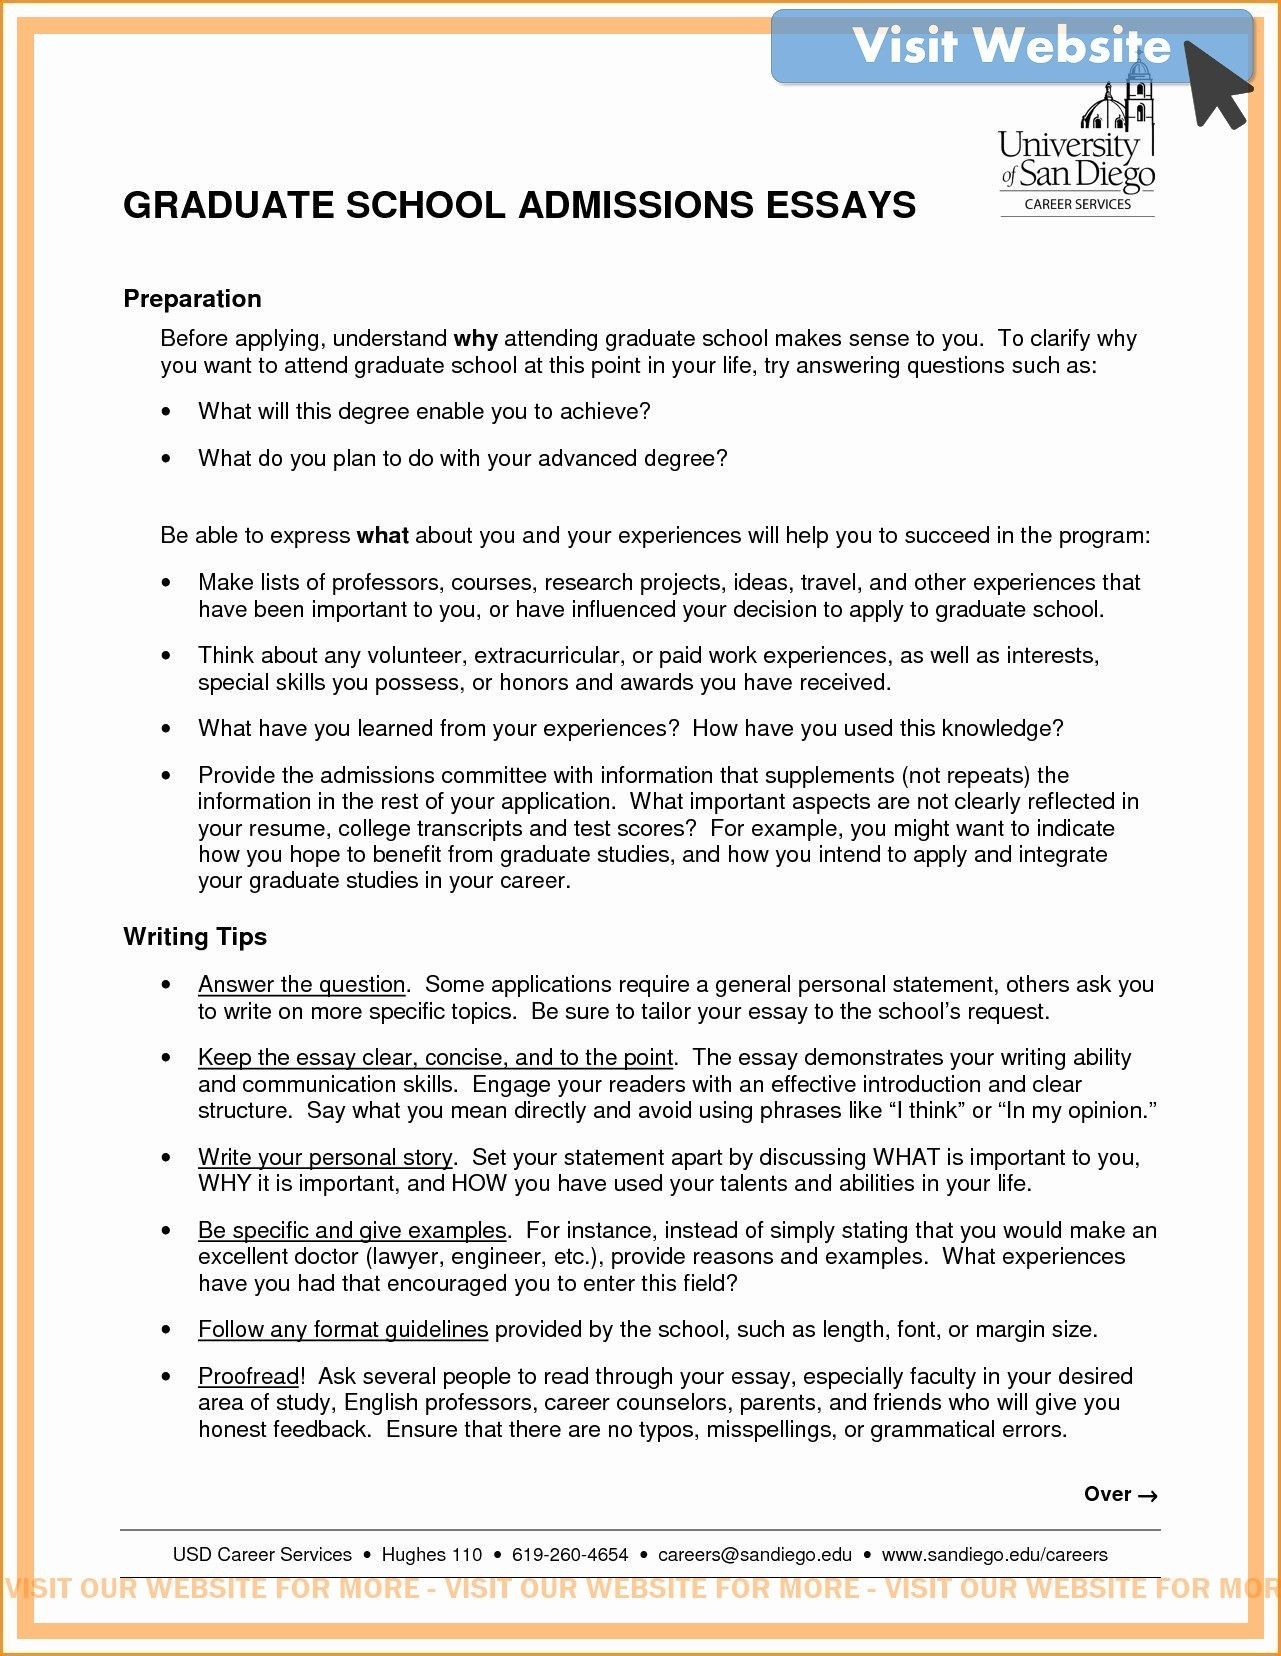 Mba Cover Letter Example In 2020 Graduate School Admission Essay Admissions Sample Application Essays Career Goal